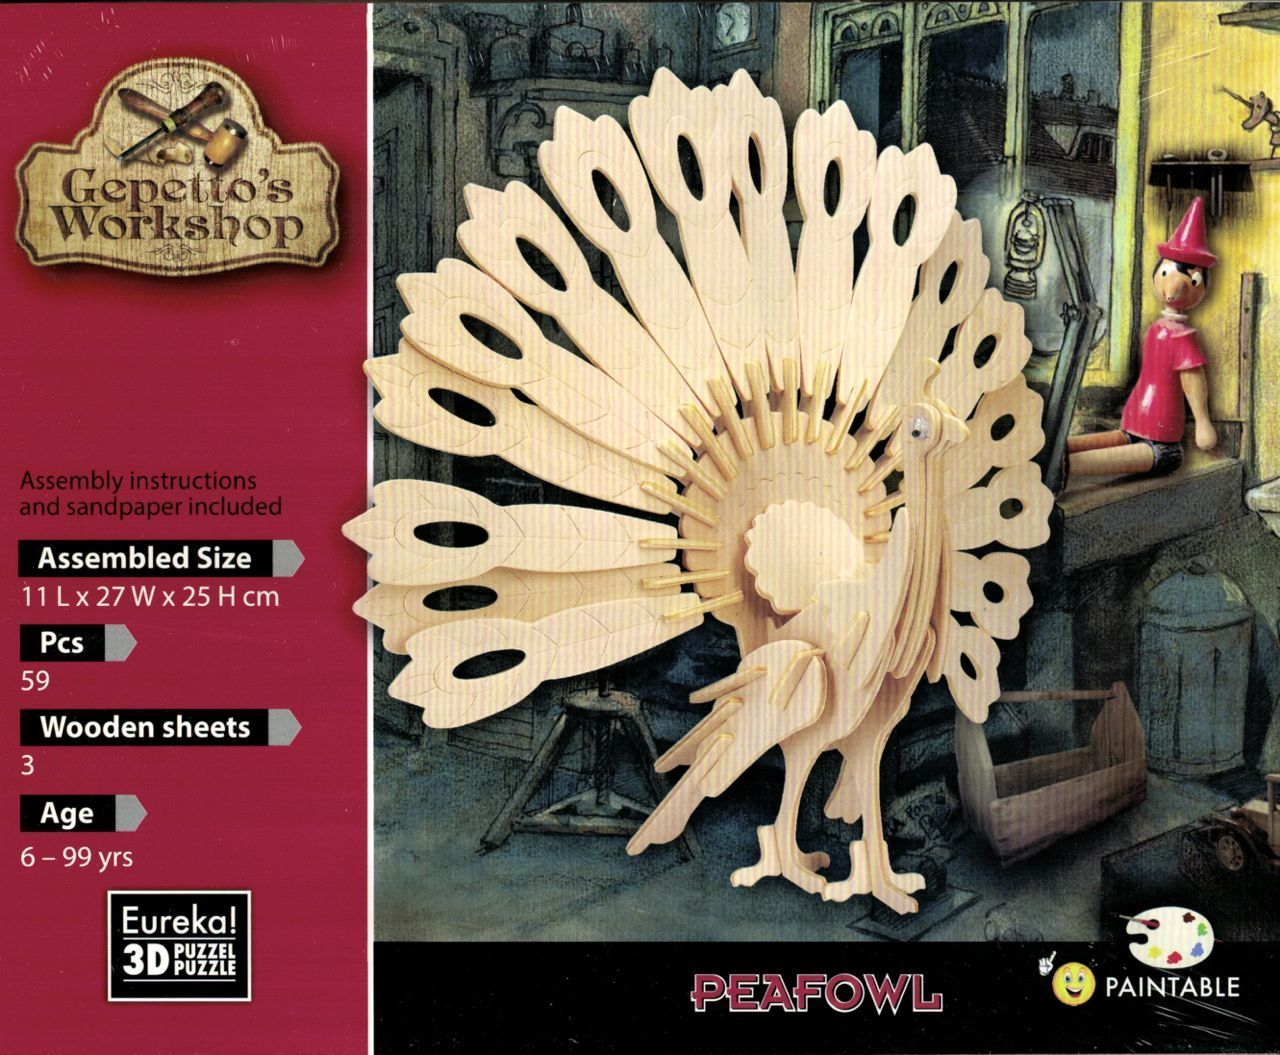 "Gepetto's woodcraft construction kit ""Peafowl"""